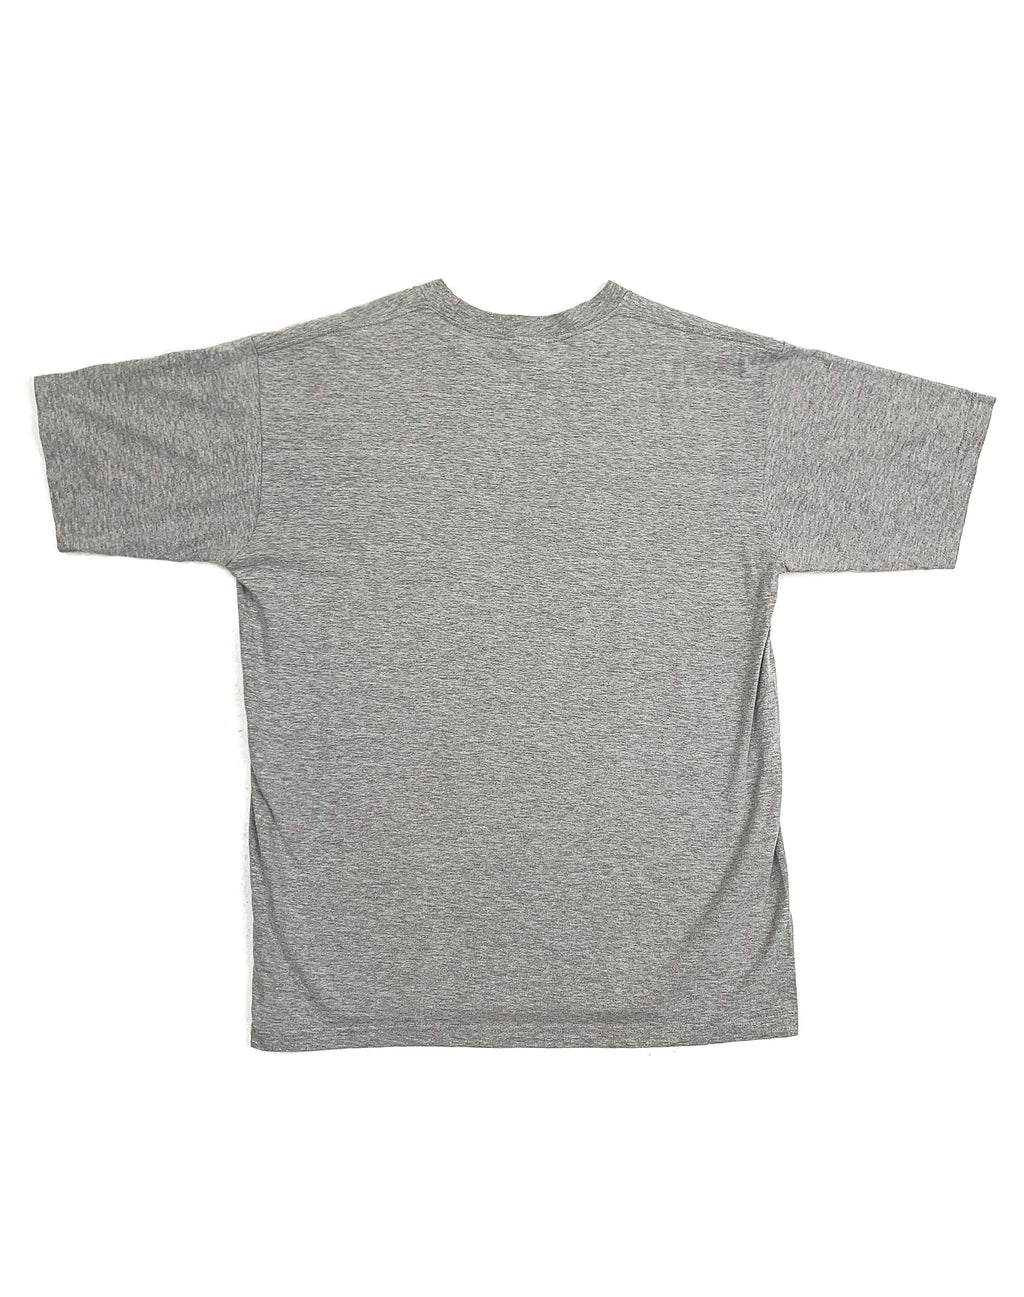 NORTH FACE GREY LOGO TEE